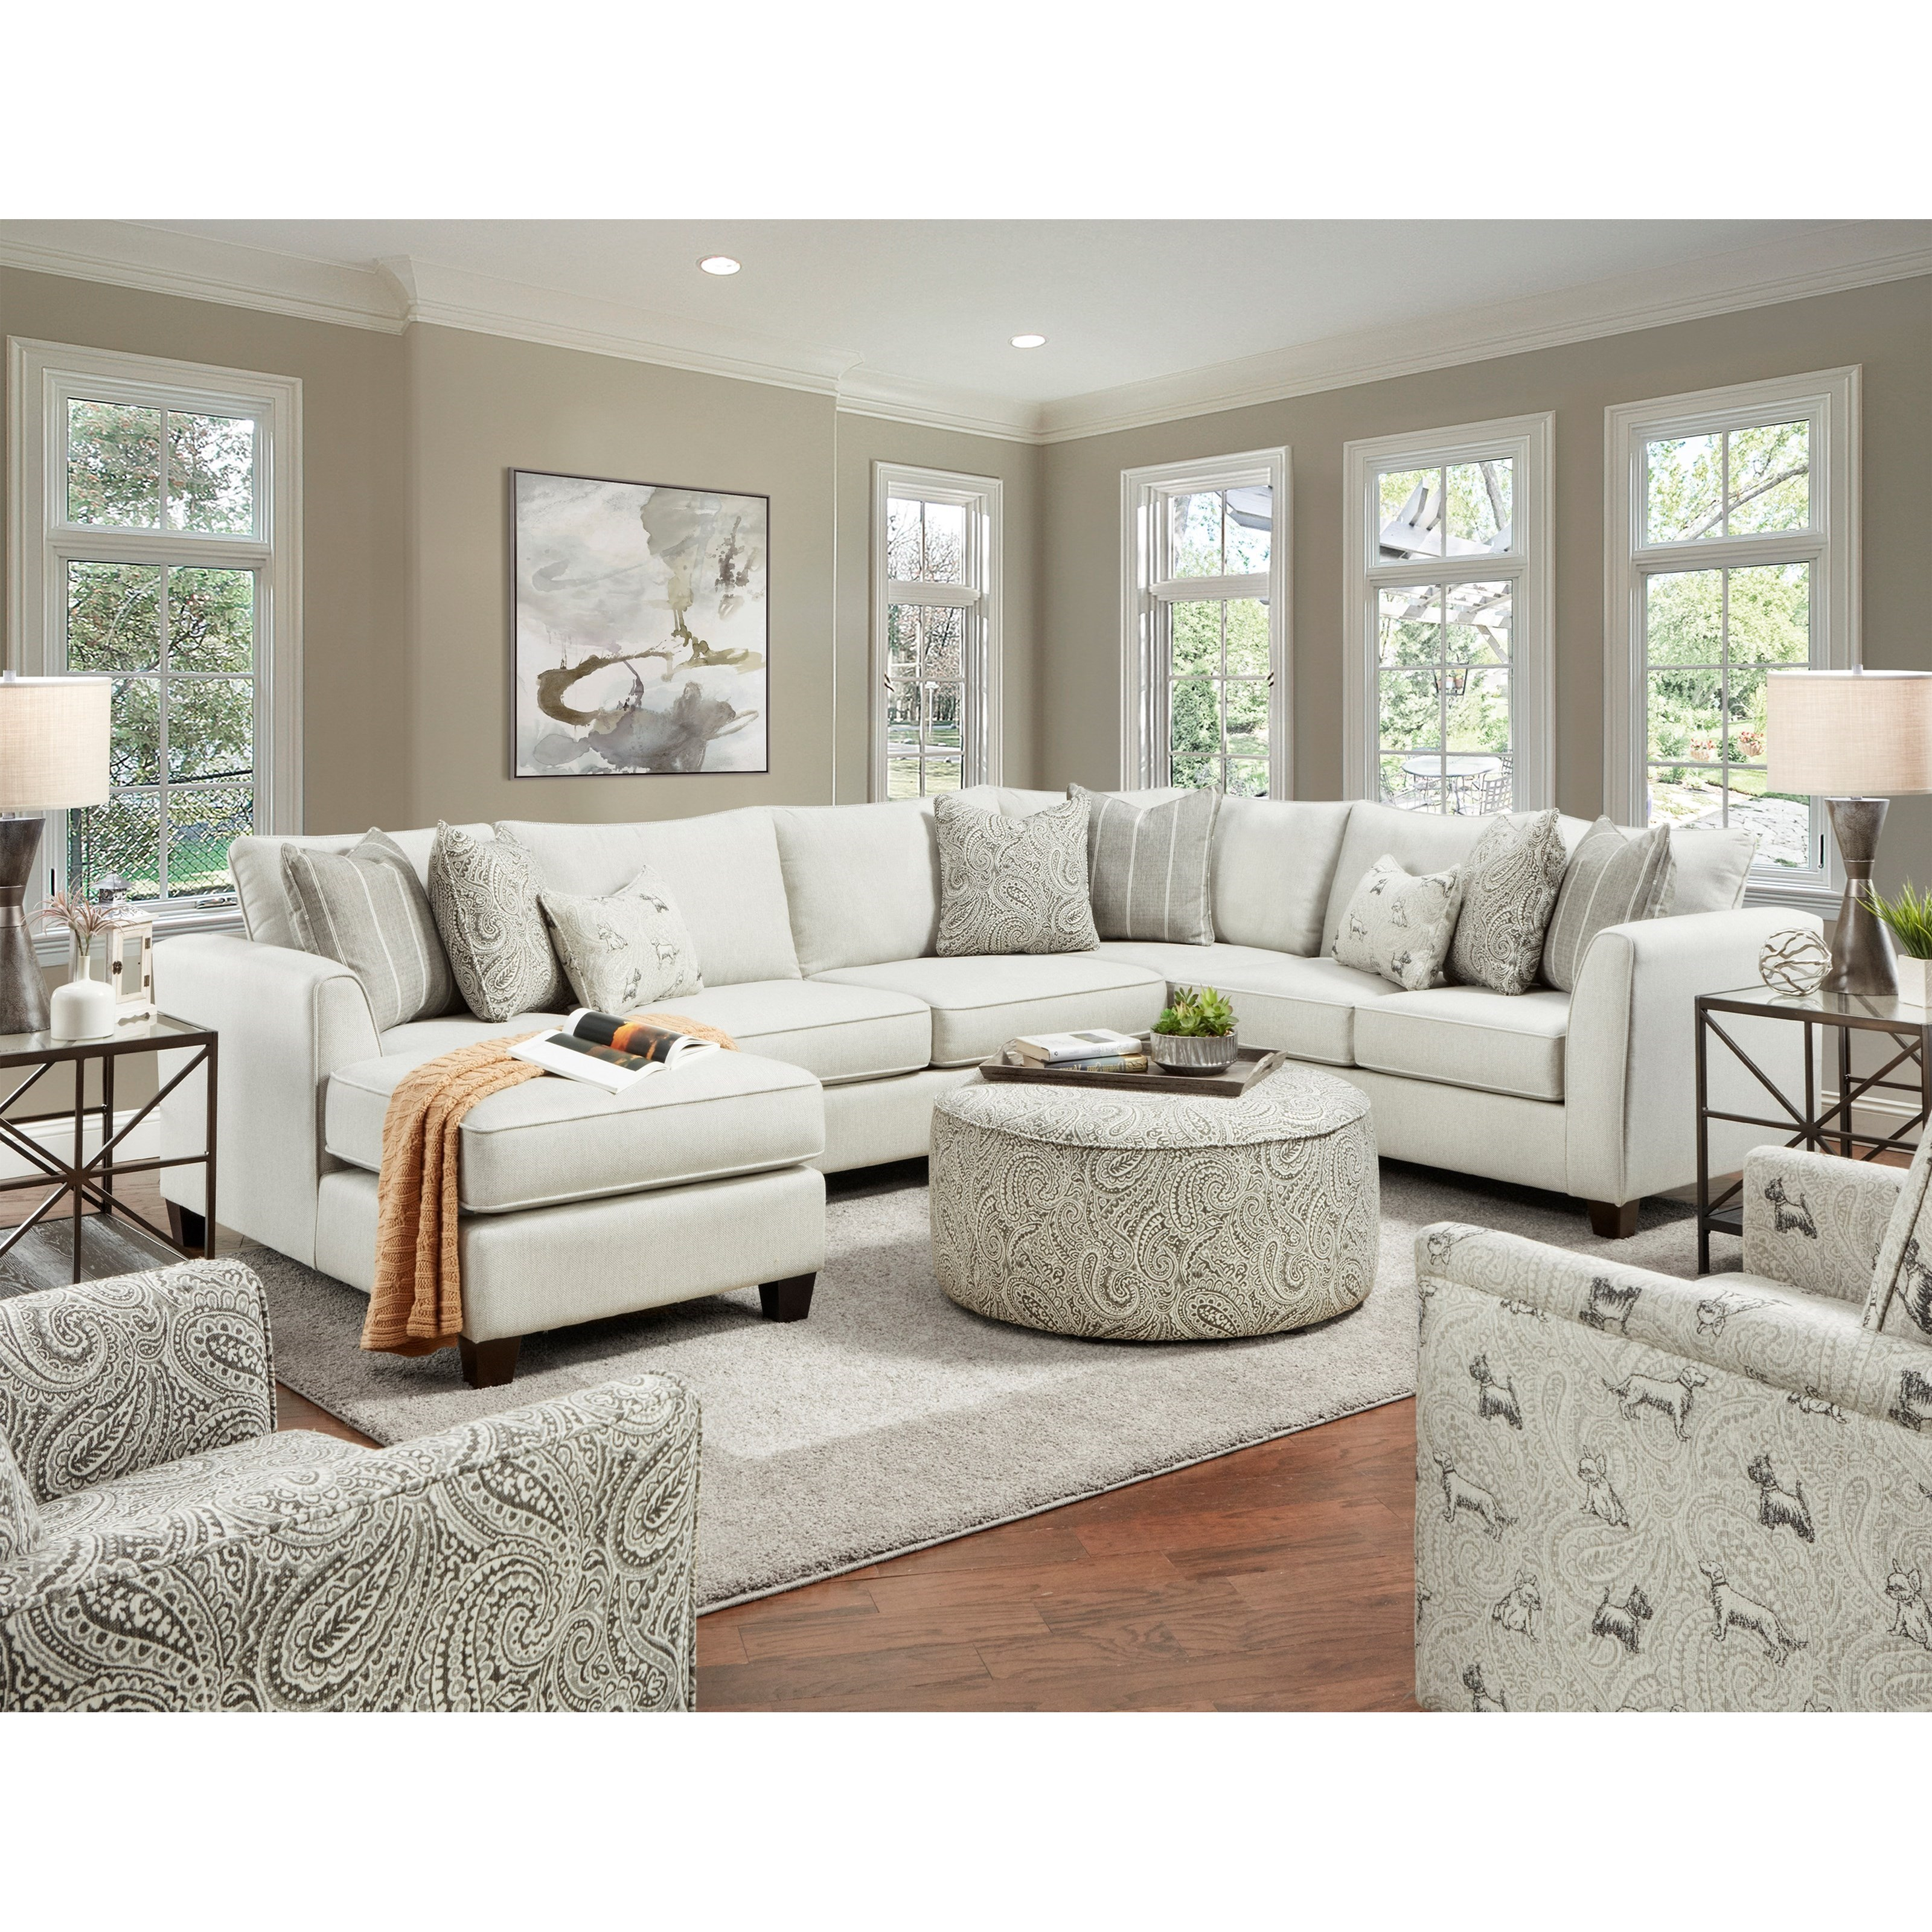 28 Living Room Group by FN at Lindy's Furniture Company